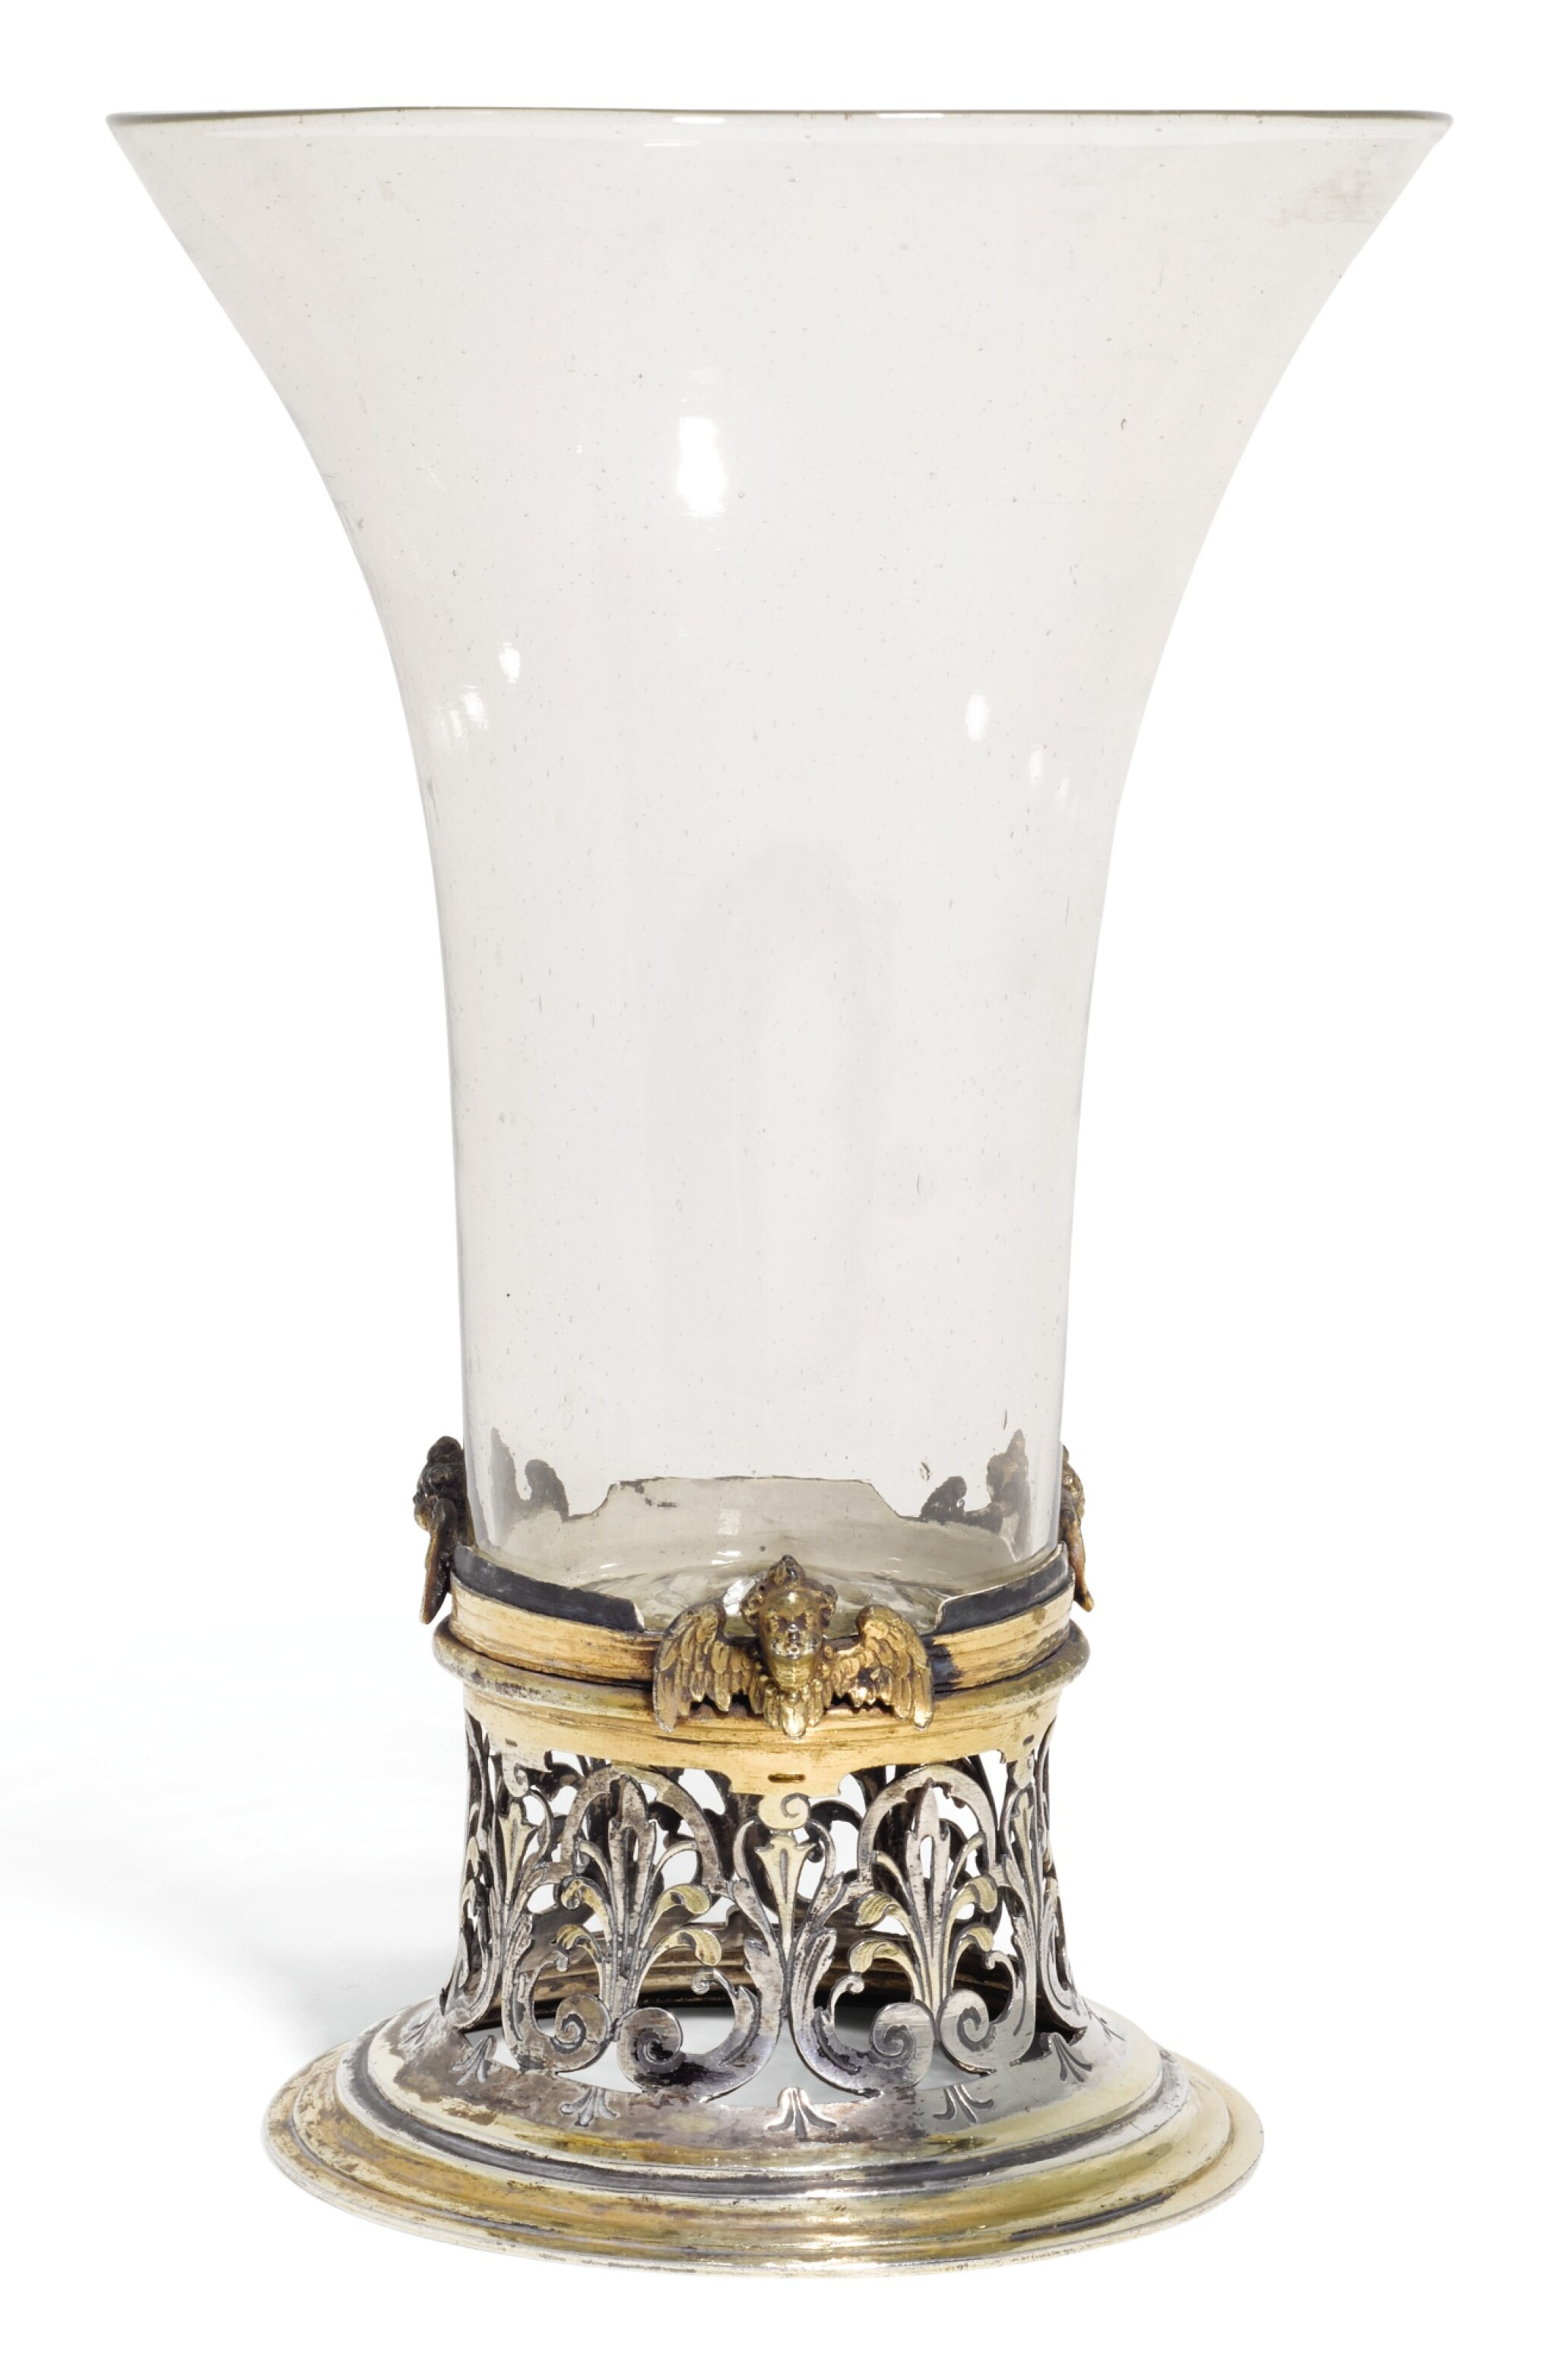 View 1 of Lot 142. AN ITALIAN GLASS BEAKER WITH CONTINENTAL PARCEL-GILT SILVER FOOT MOUNT, UNMARKED, CIRCA 1630.